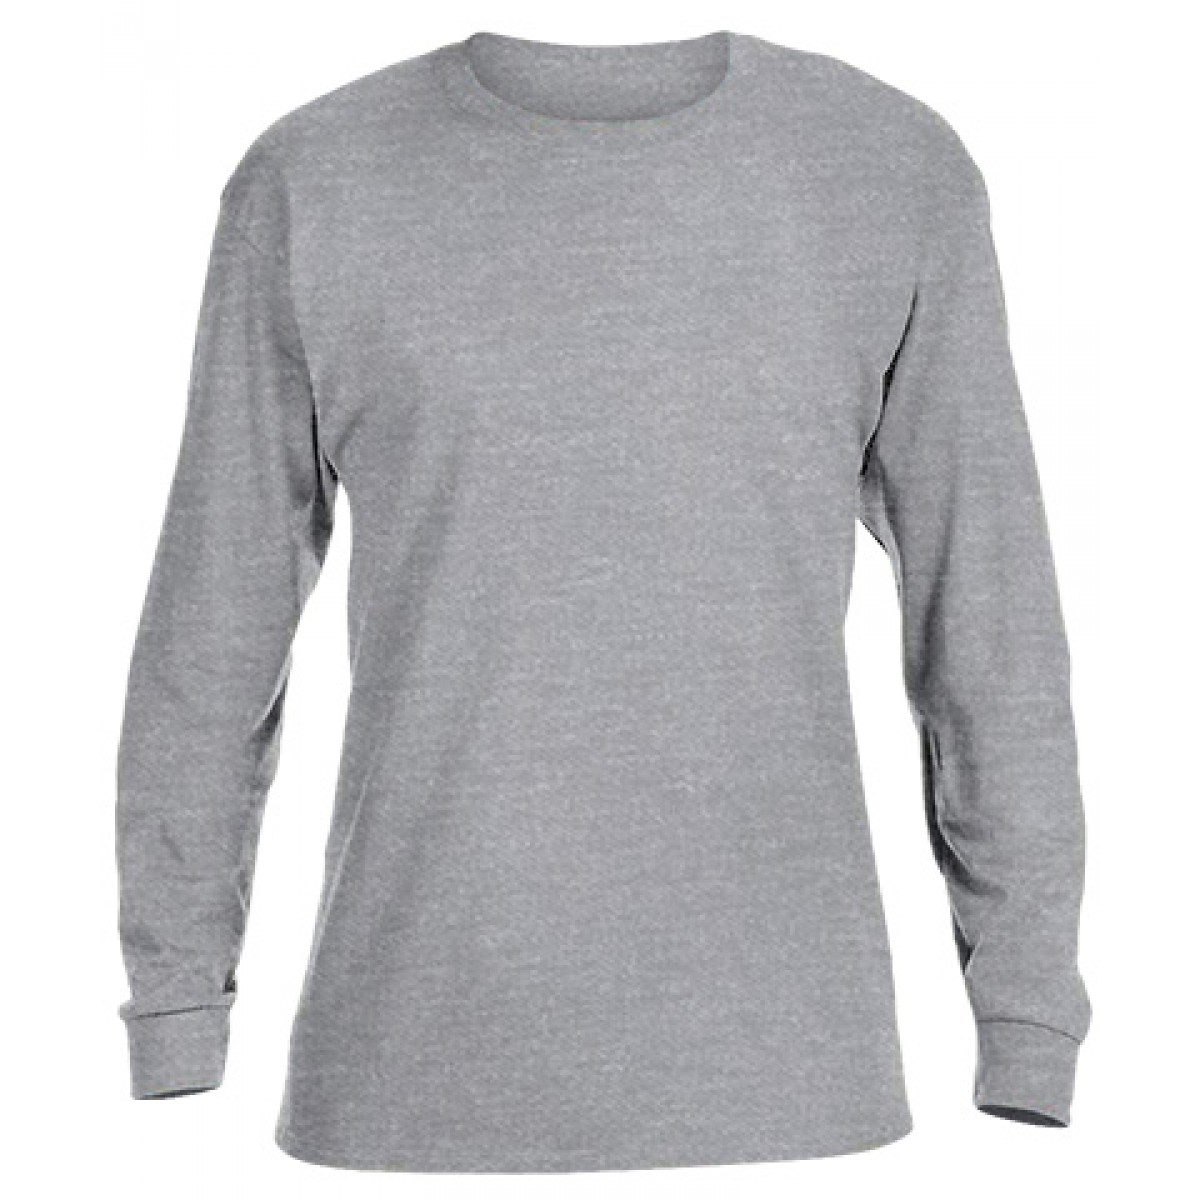 Basic Long Sleeve Crew Neck -Ash Gray-YL